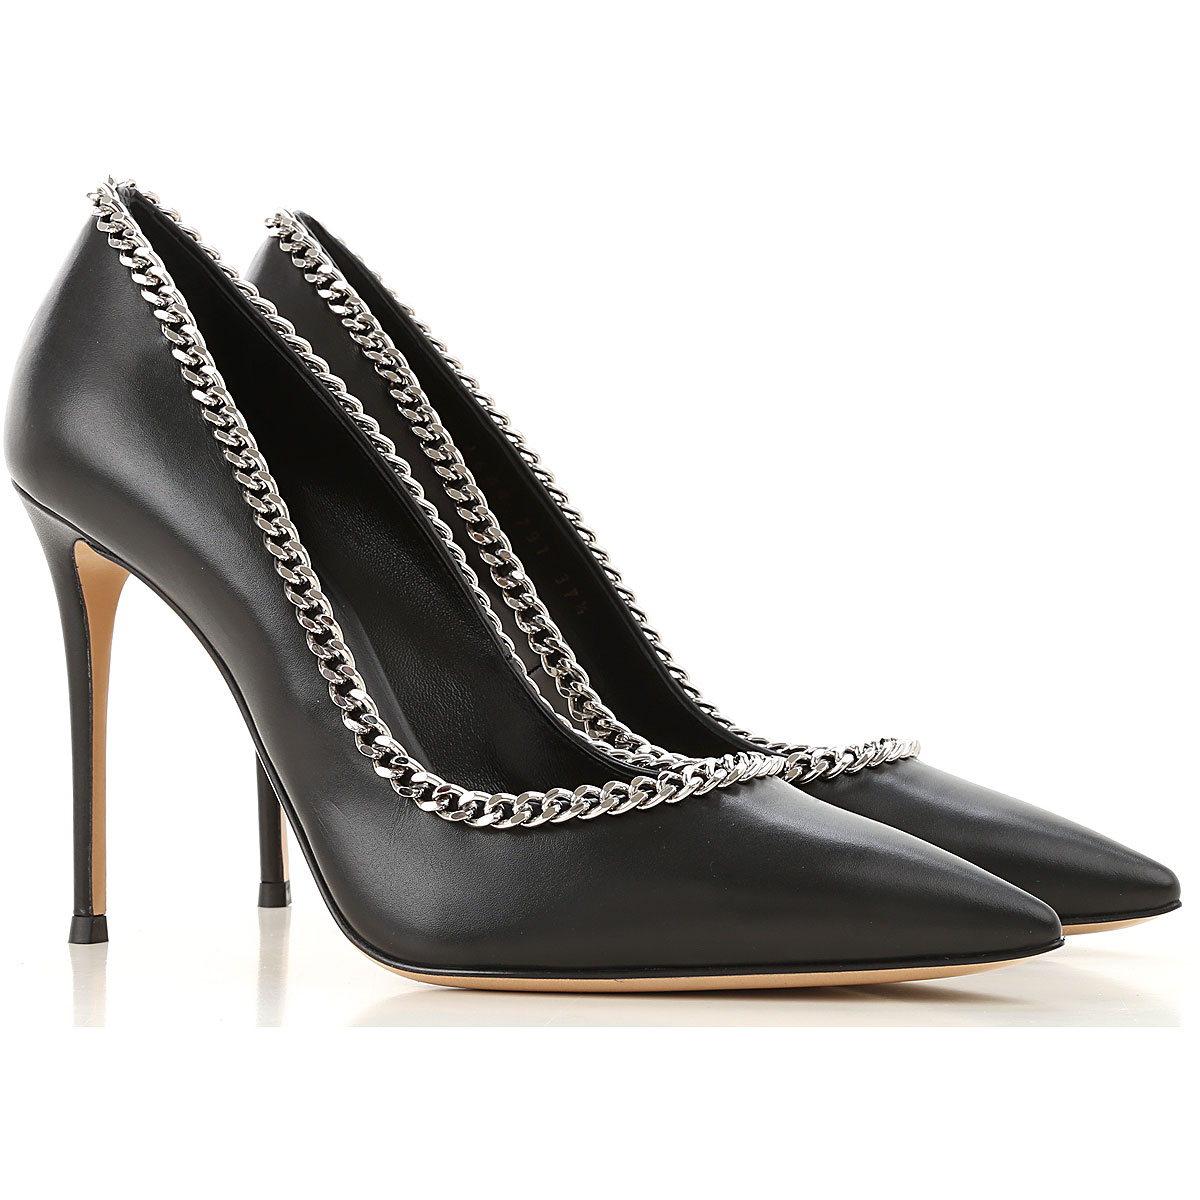 Casadei Pumps & High Heels for Women On Sale, Black, Leather, 2019, 7 8 8.5